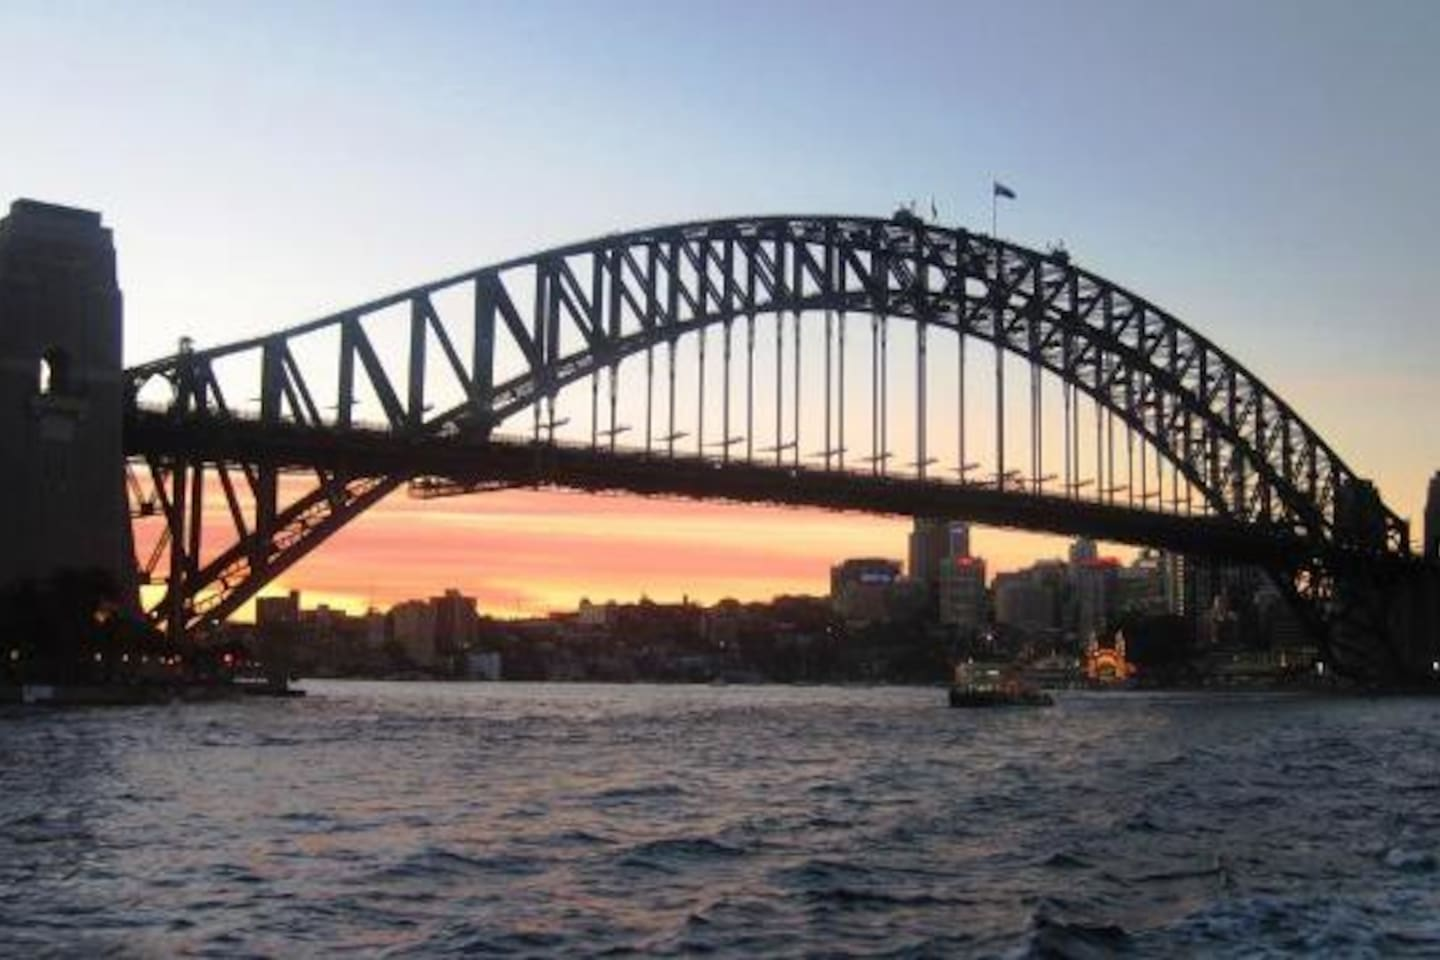 Sydney Harbour Bridge. One of Sydney's famous tourist spots.